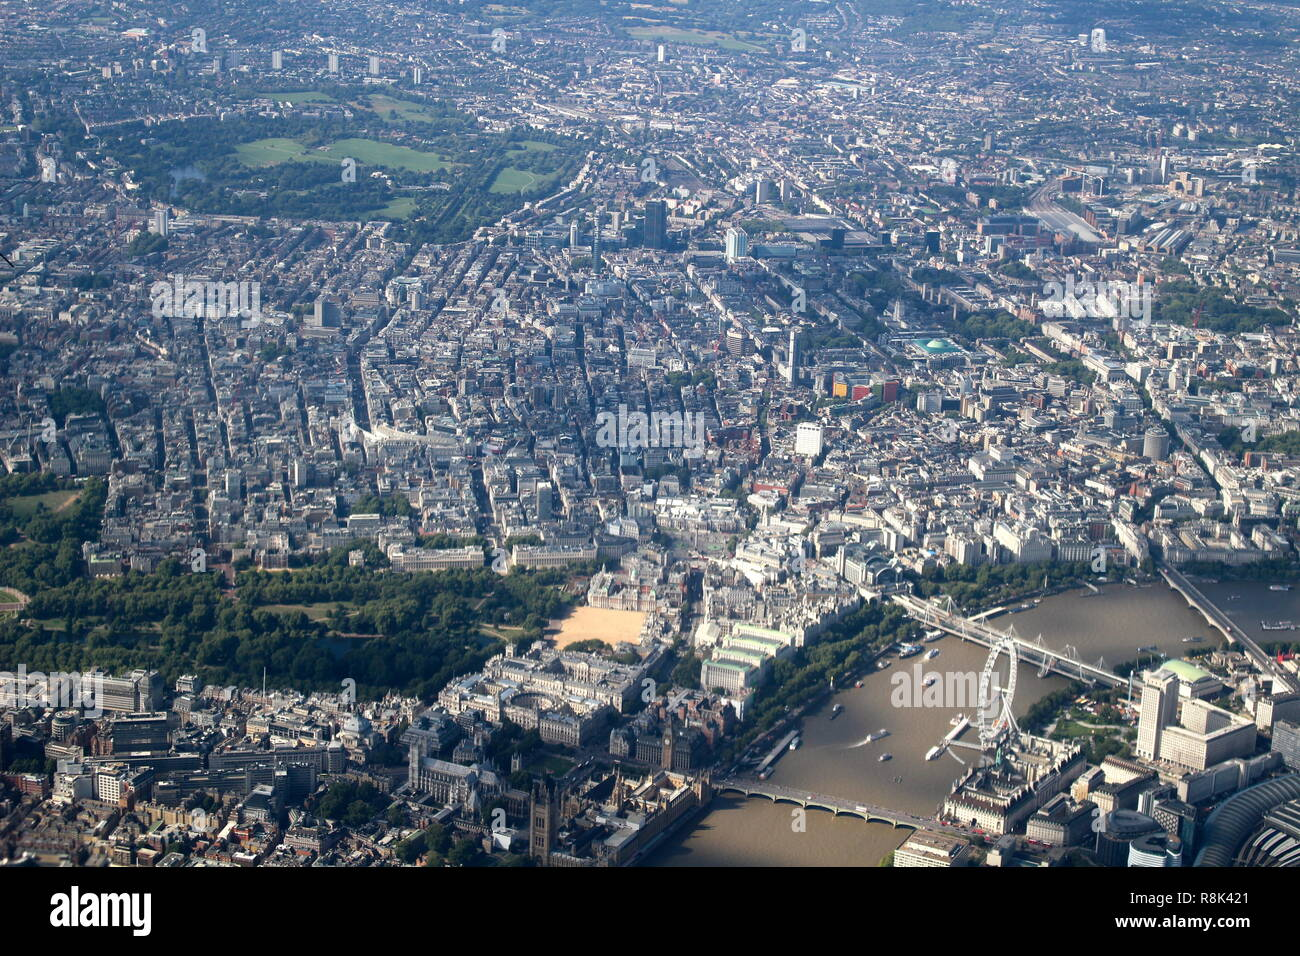 Aerial of London featuring The River Thames and London Eye - Stock Image